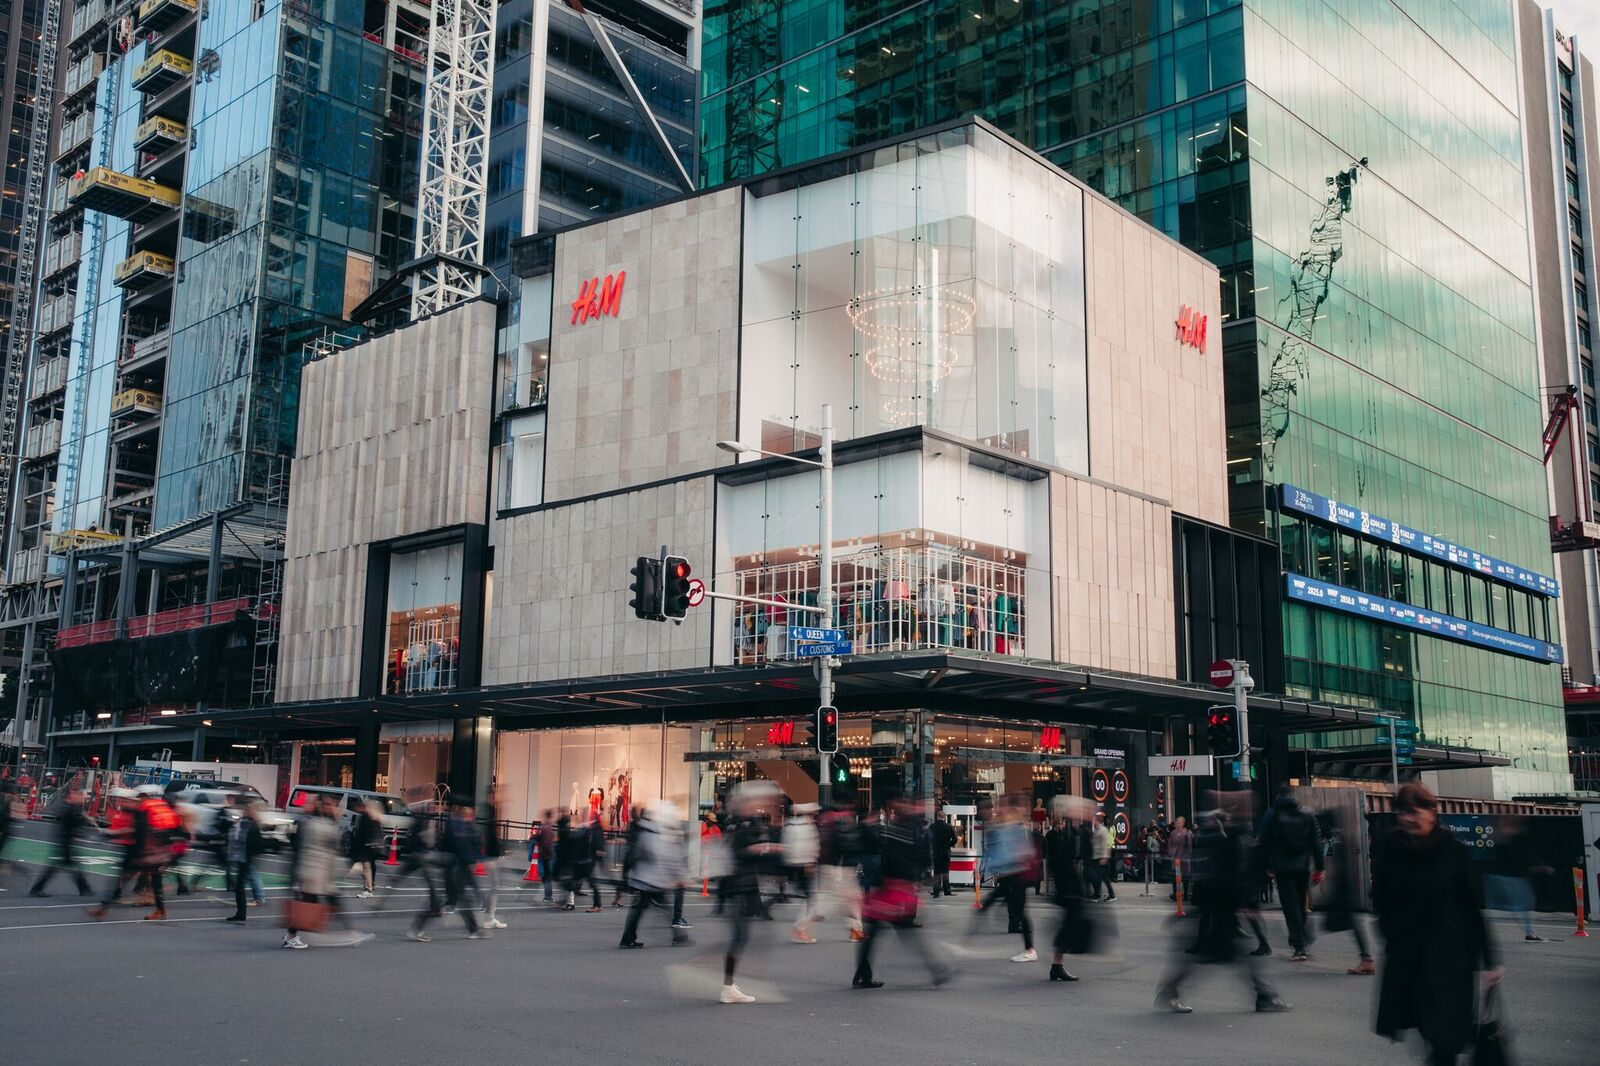 new h&m store external shot